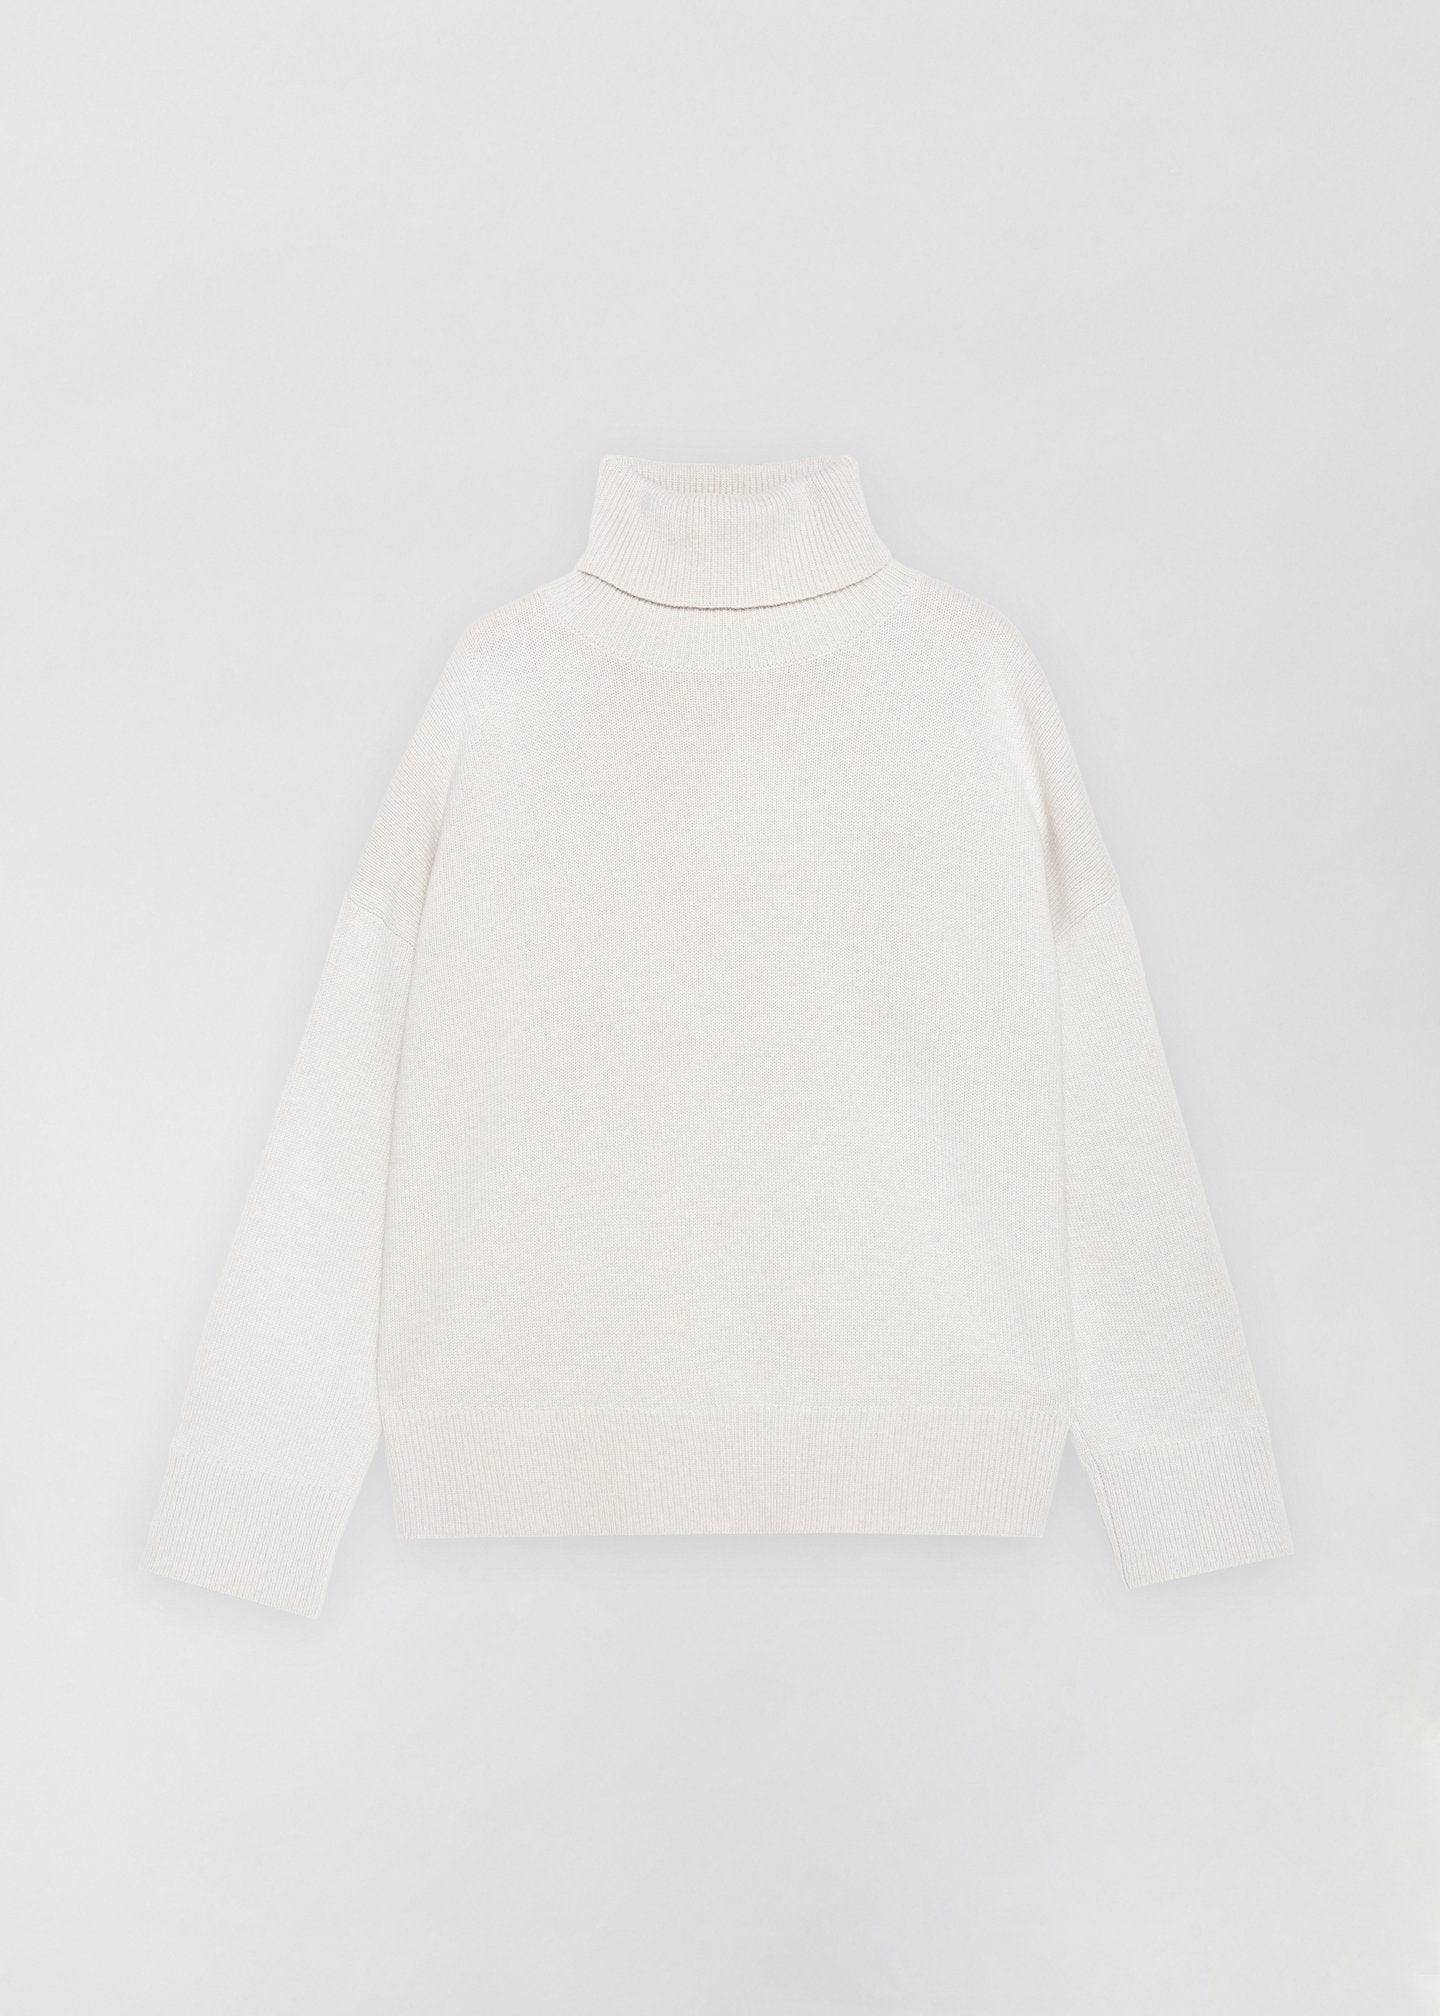 Dove Grey Boxy Turtleneck Sweater, Ivory A-Line Skirt - CO